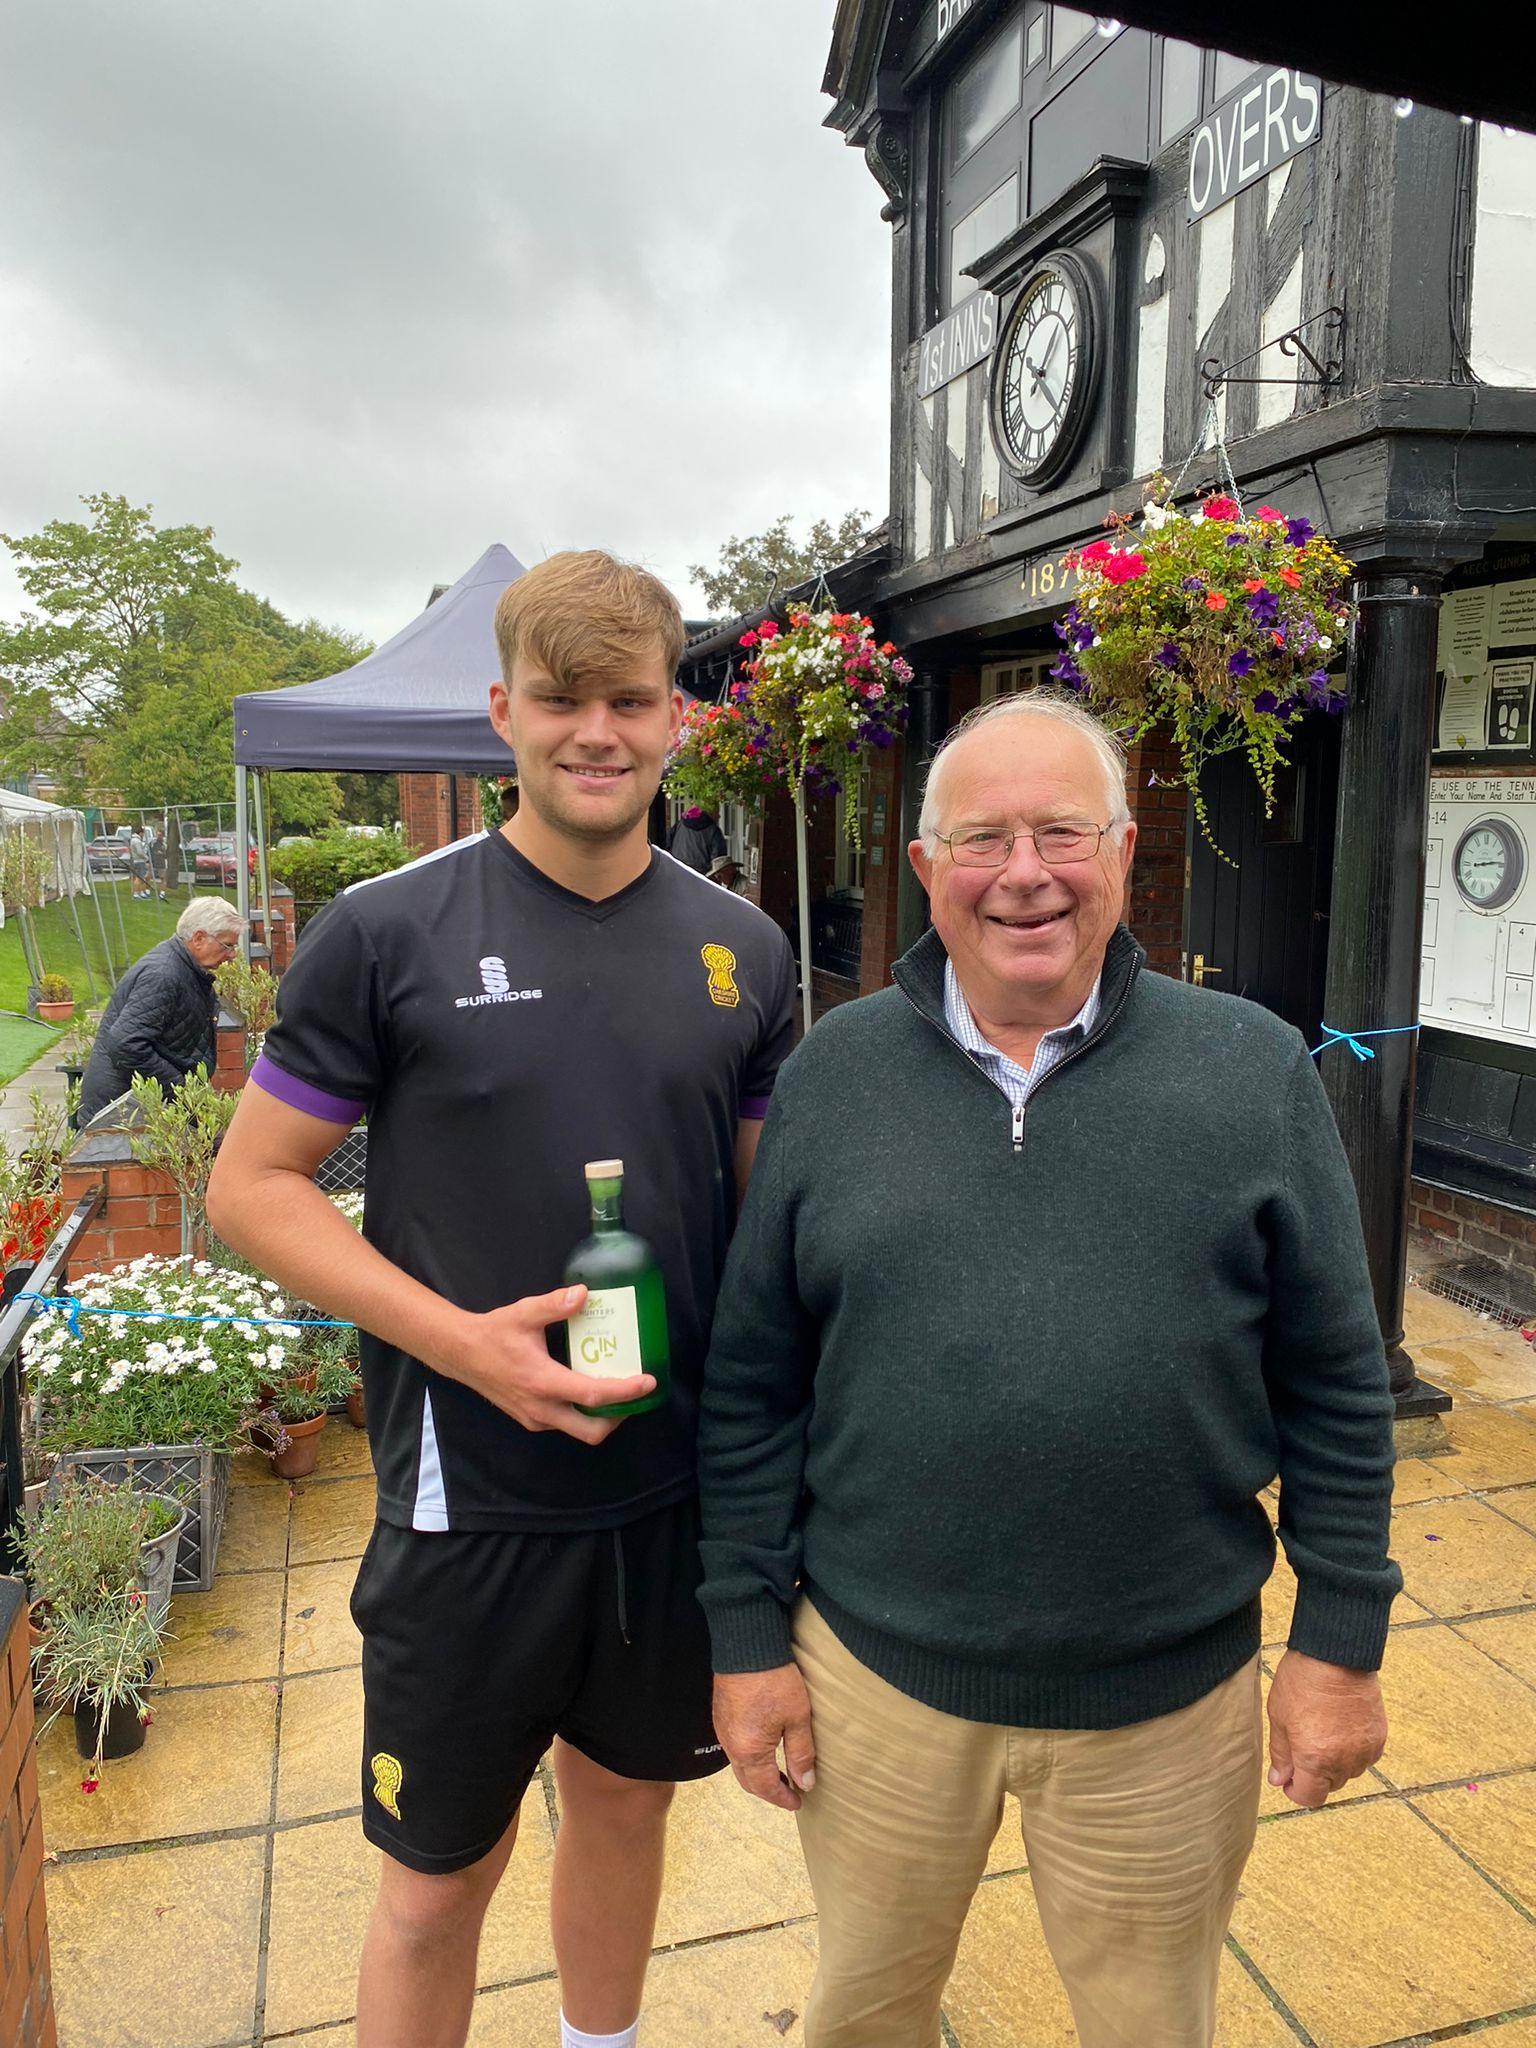 Man of the match Ben takes honours (and gin!)